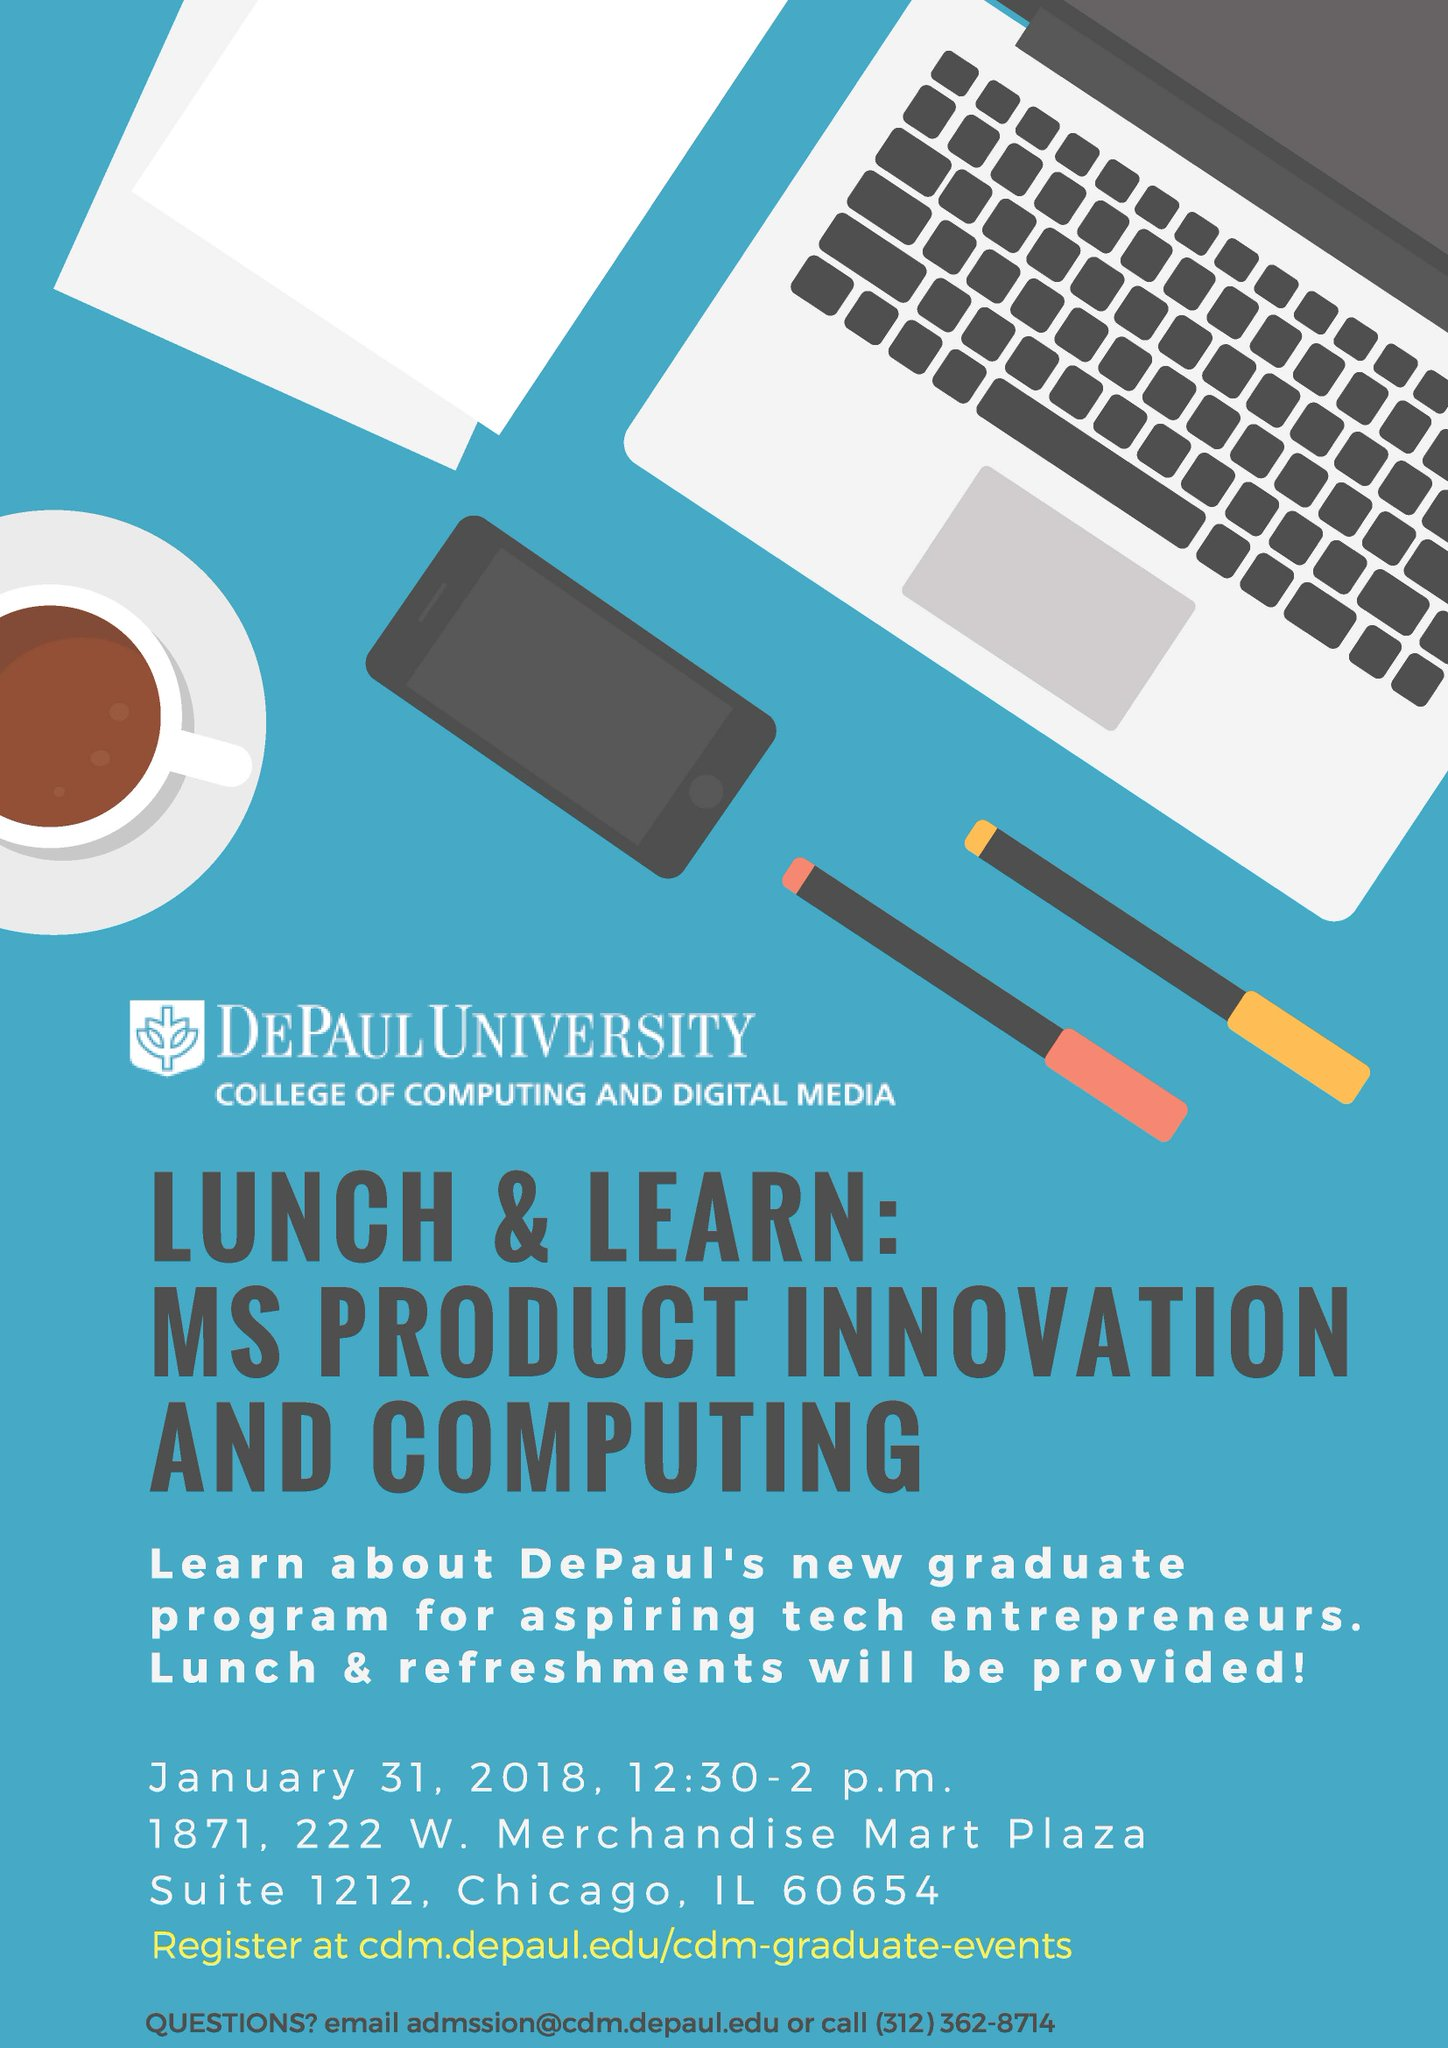 MS in Product Innovation and Computing – DePaul Makes